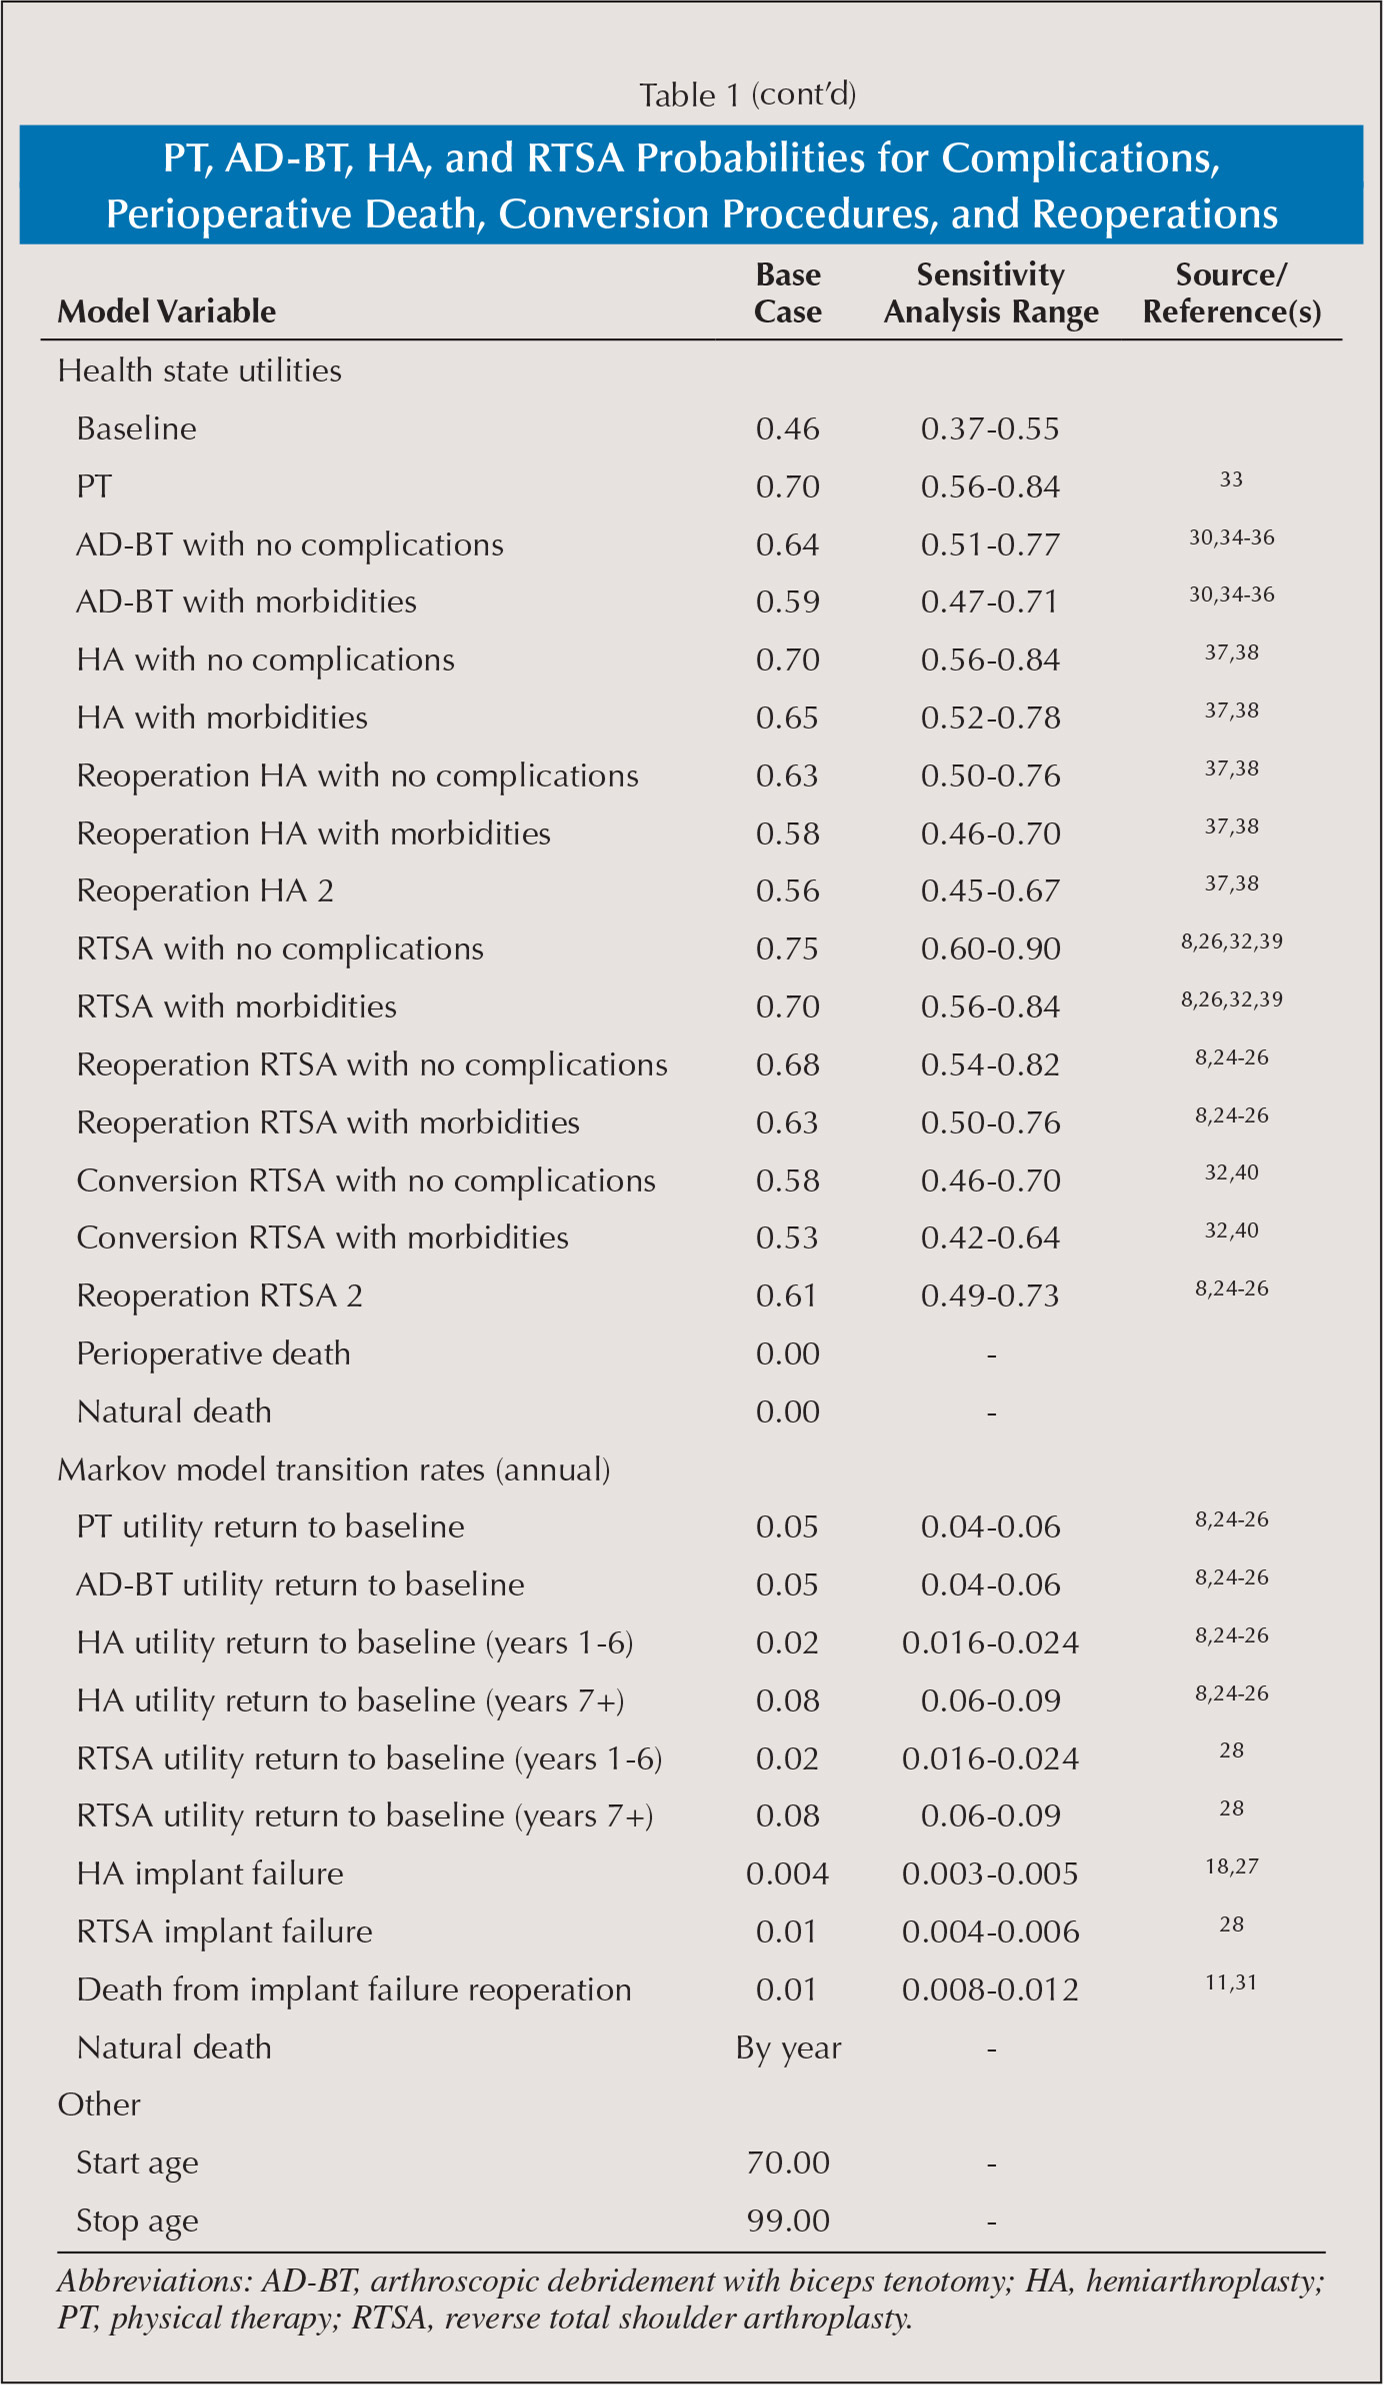 PT, AD-BT, HA, and RTSA Probabilities for Complications, Perioperative Death, Conversion Procedures, and Reoperations